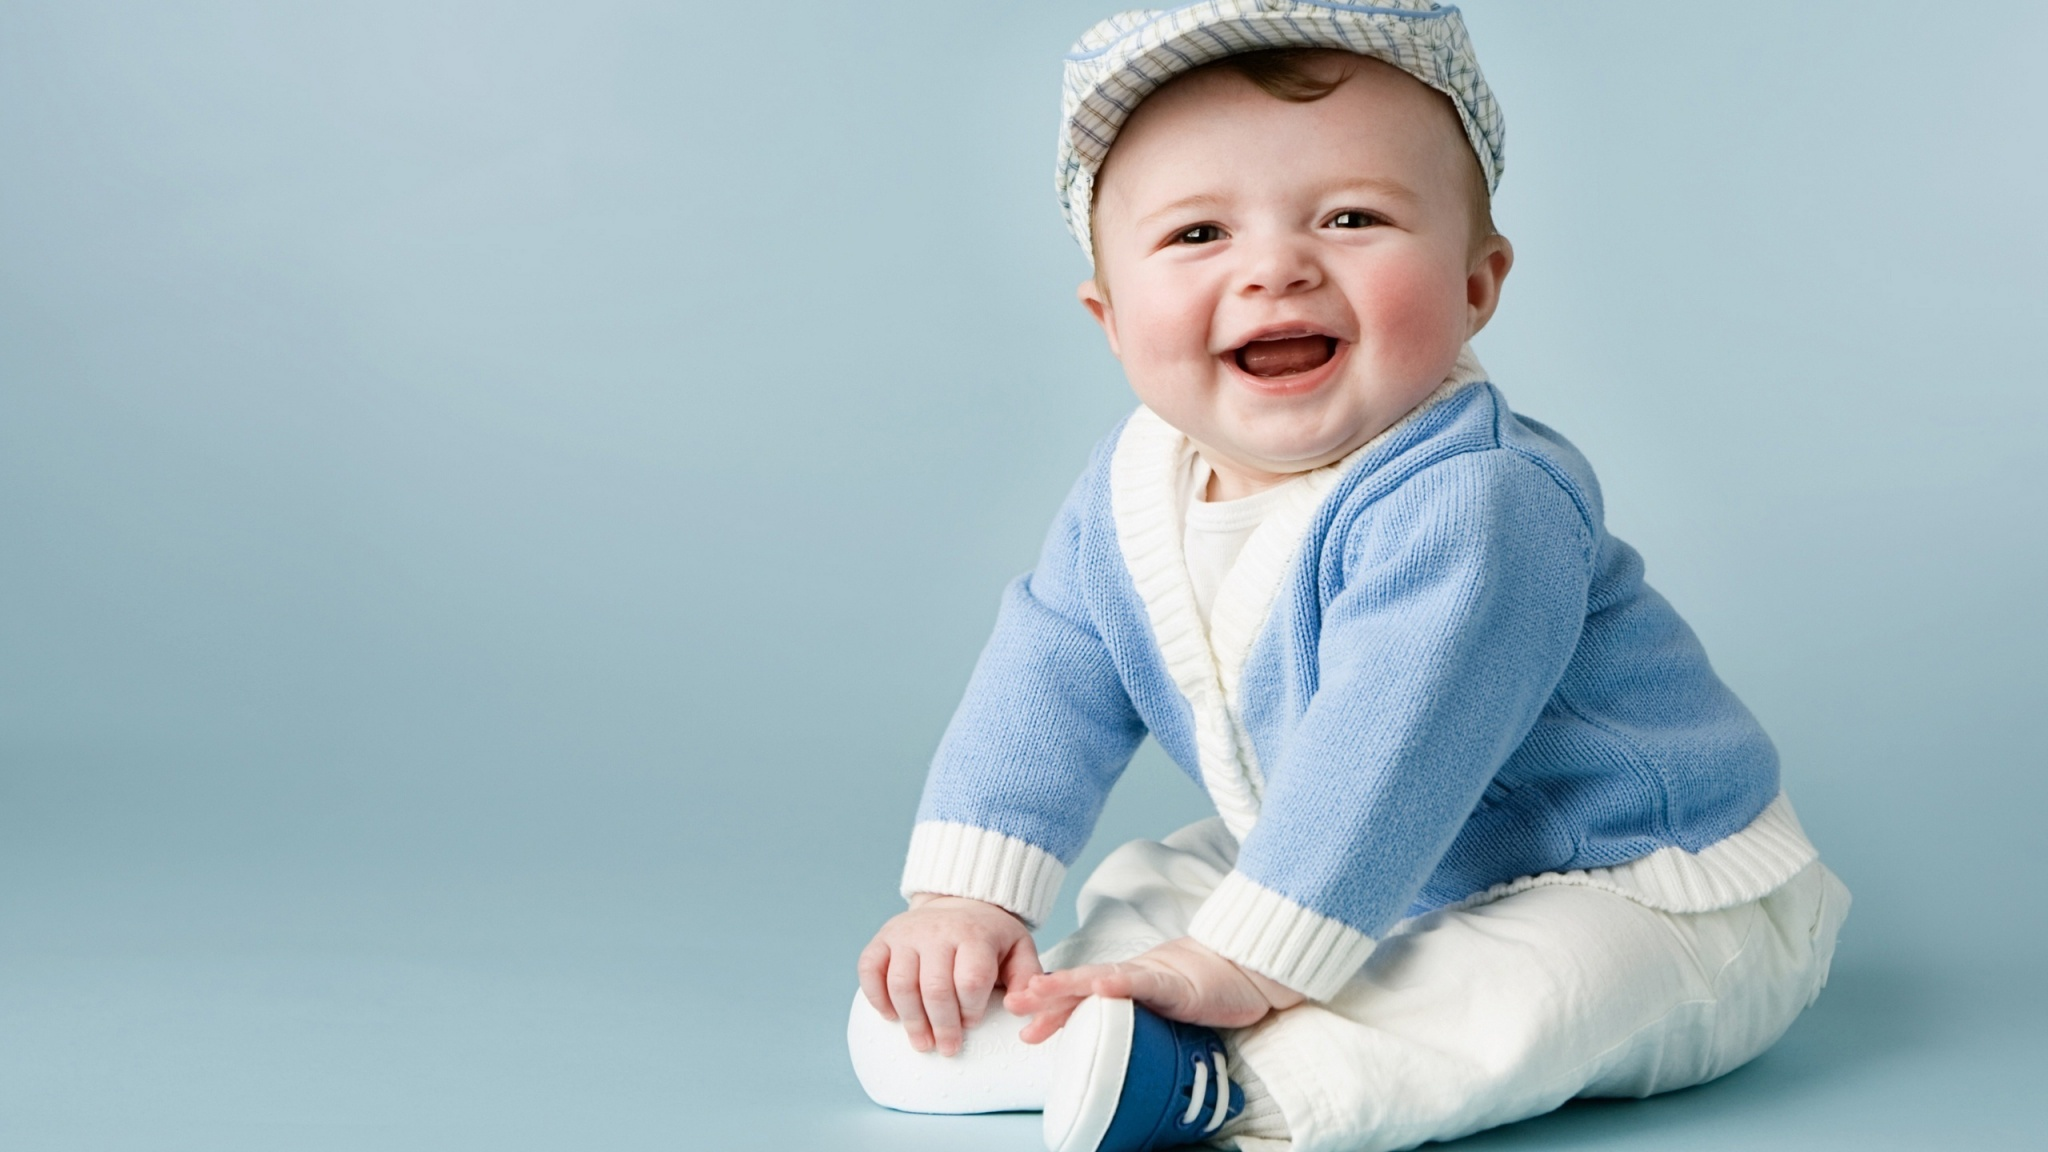 Cute Smile Model Baby 2048 x 1152 Download Close 2048x1152